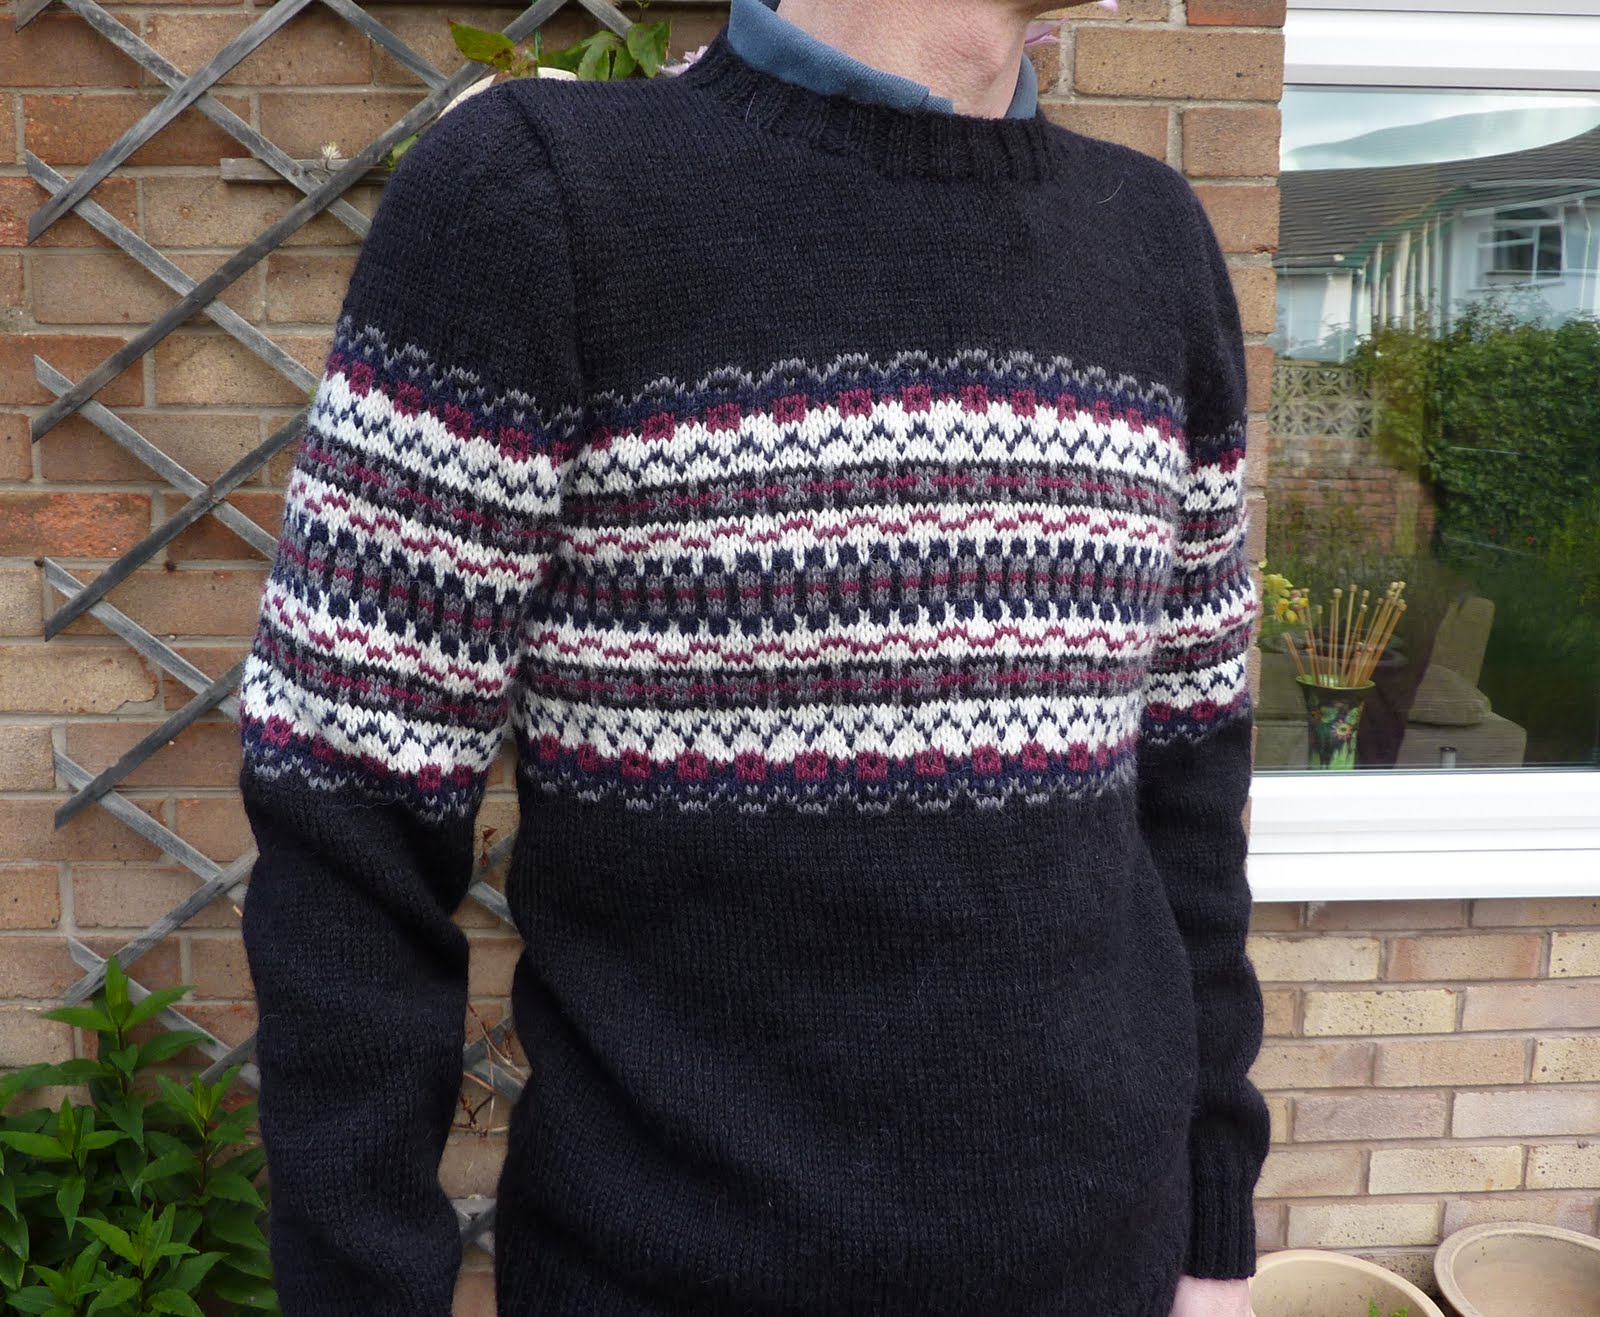 Free Knitting Patterns For Men's Sweaters Yellow Pink And Sparkly June 2011